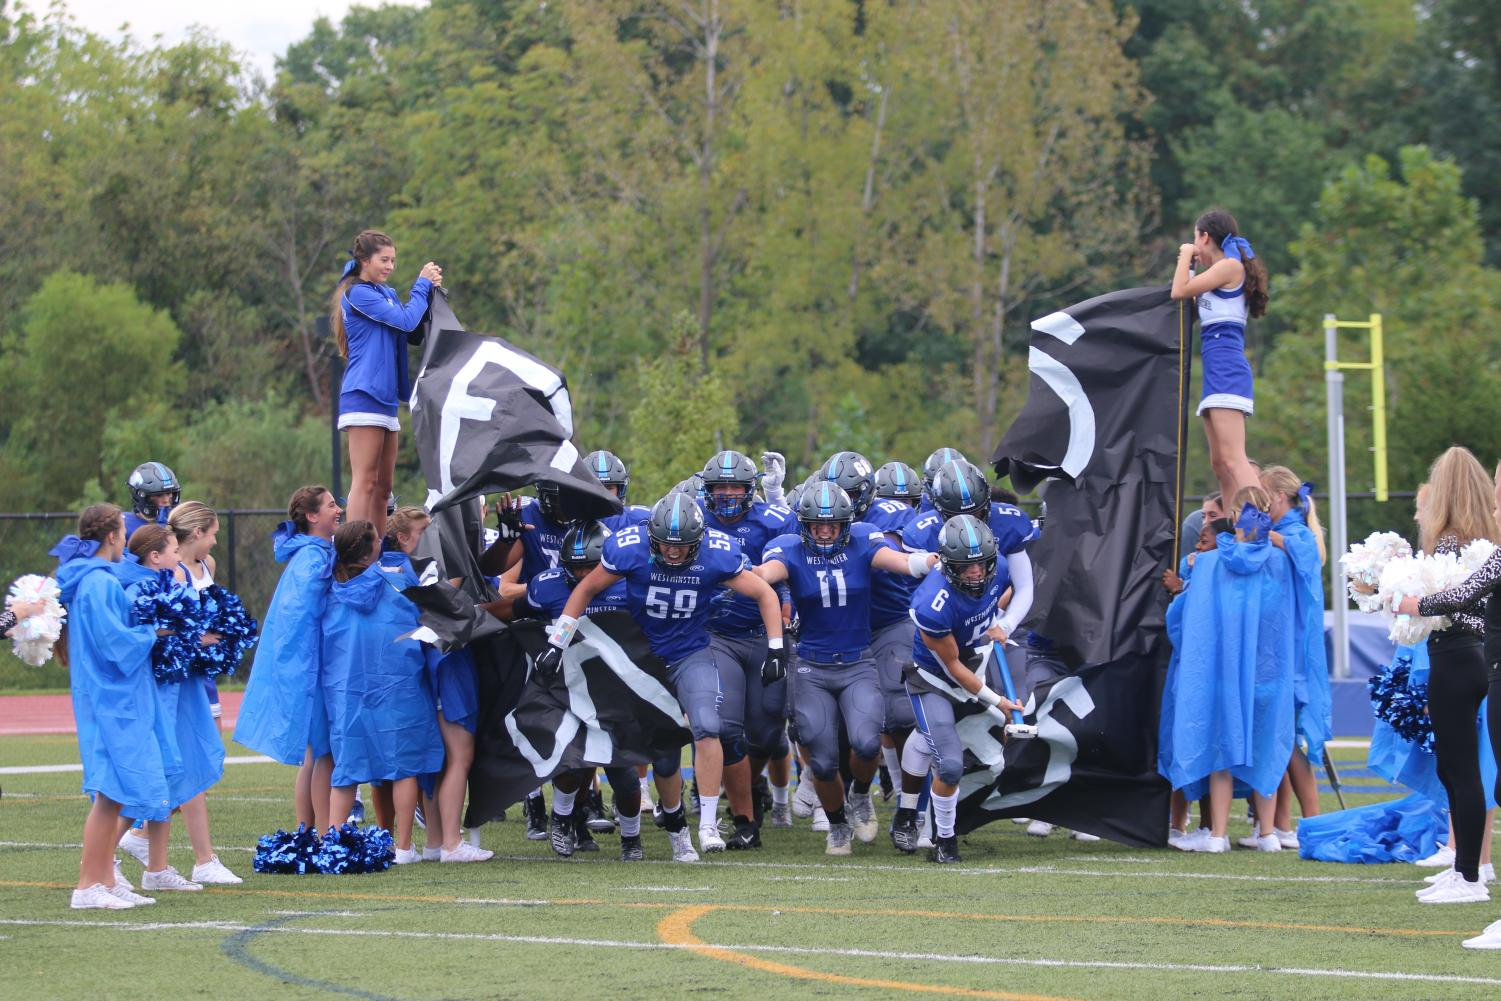 The Wildcats run out through the banner before their game against Lutheran North.